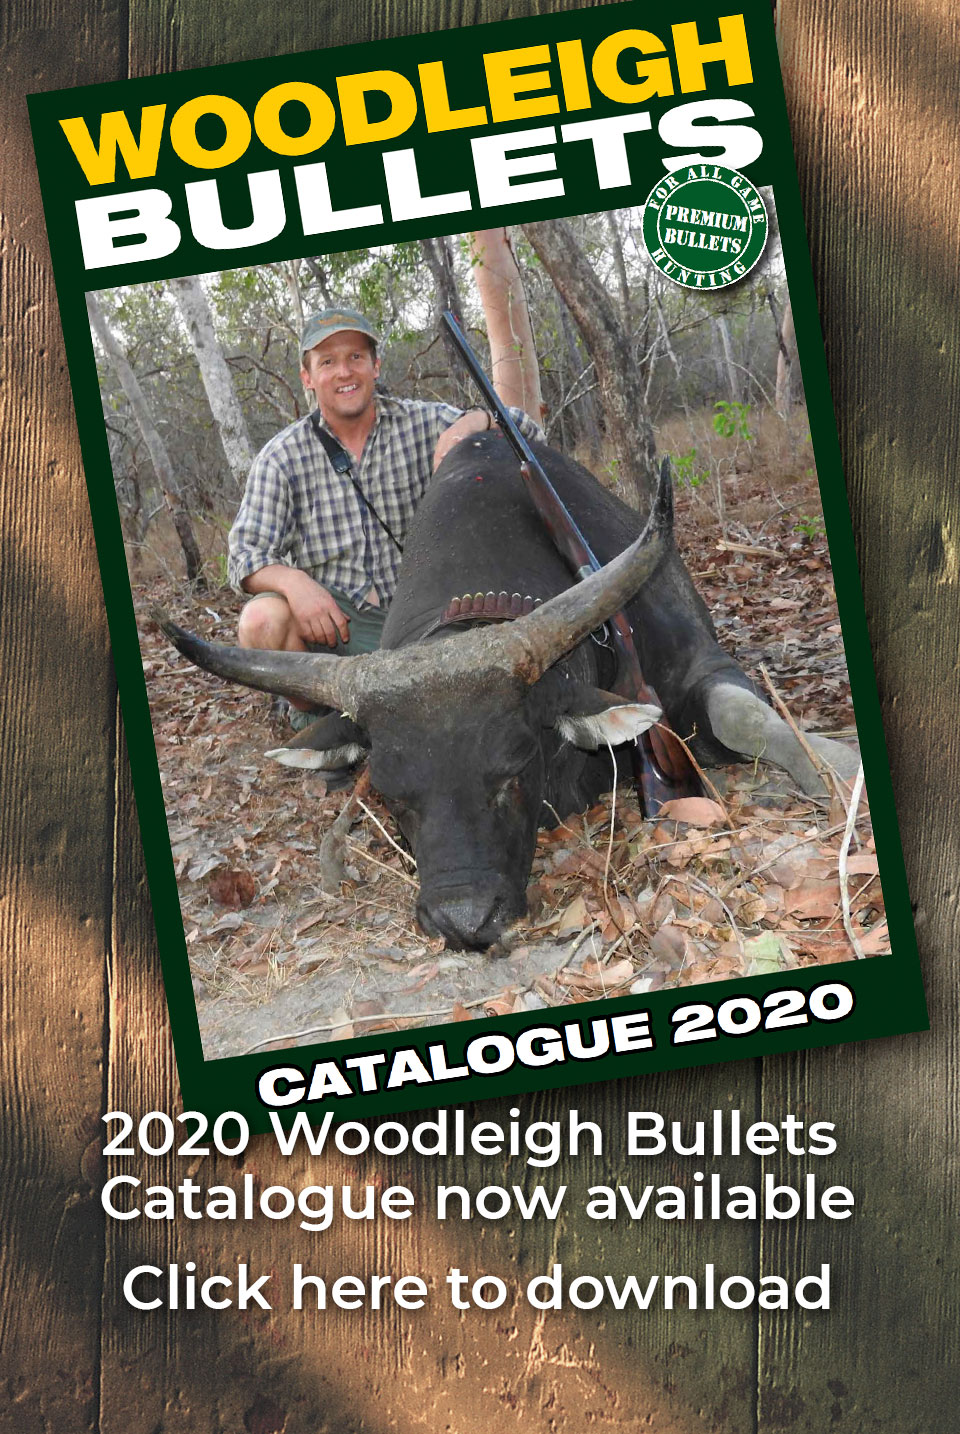 Woodleigh Bullets 2020 Catalogue